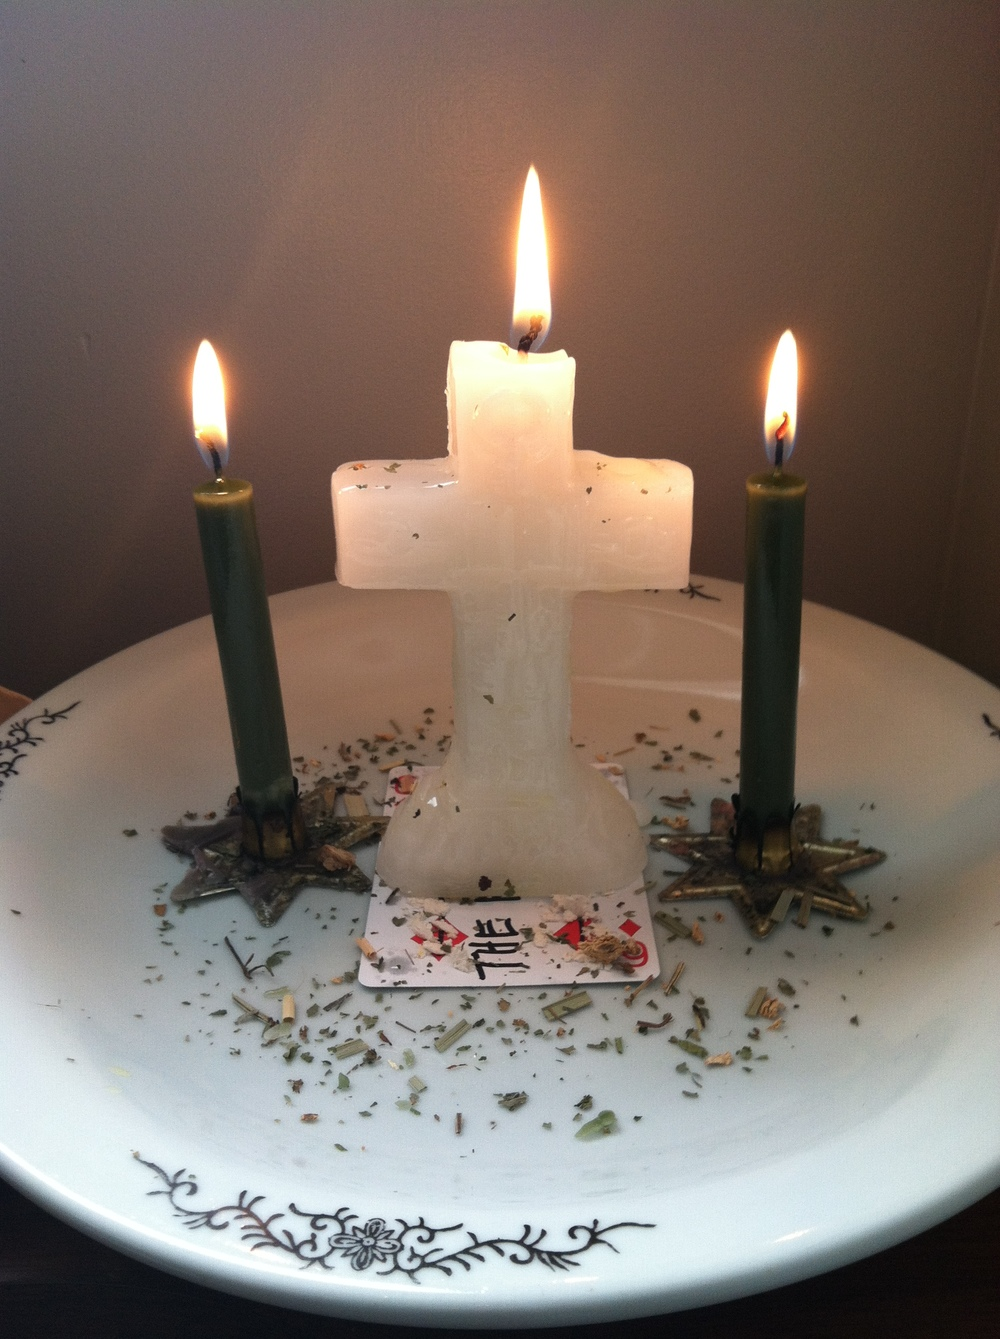 Candle spell to help a client find employment